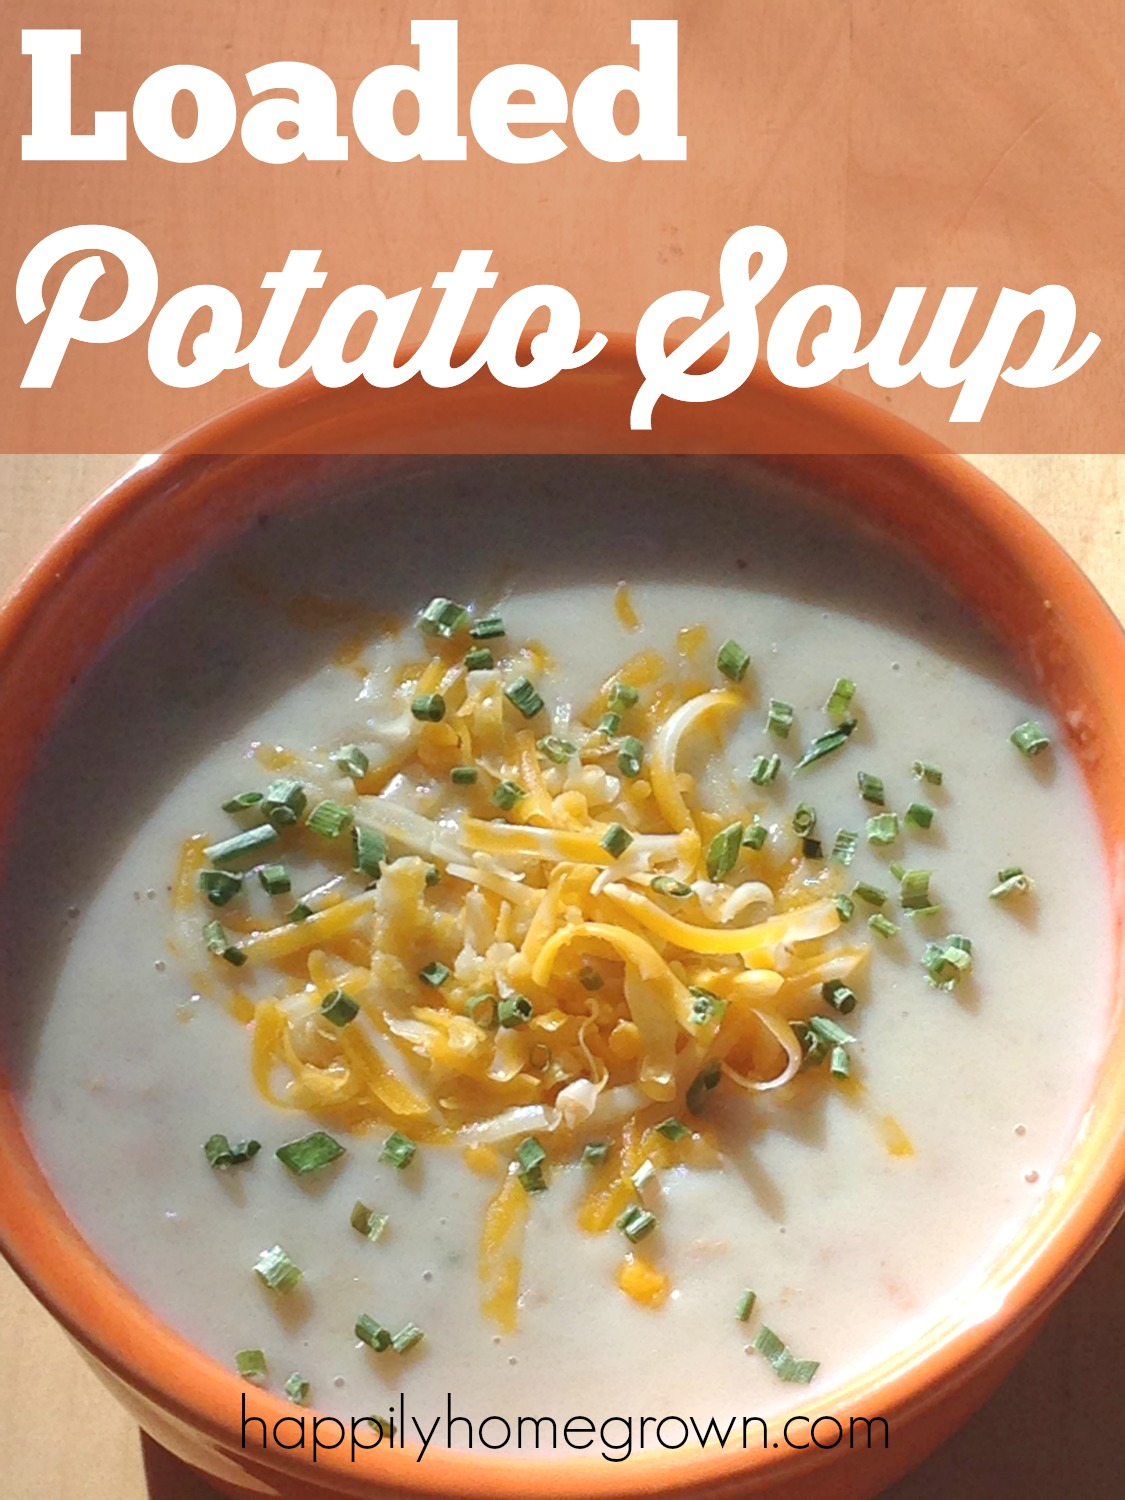 What's better than a warm bowl of soup on a cold day? Try this creamy Loaded Potato Soup with some crusty bread and you'll have the perfect comfort food.